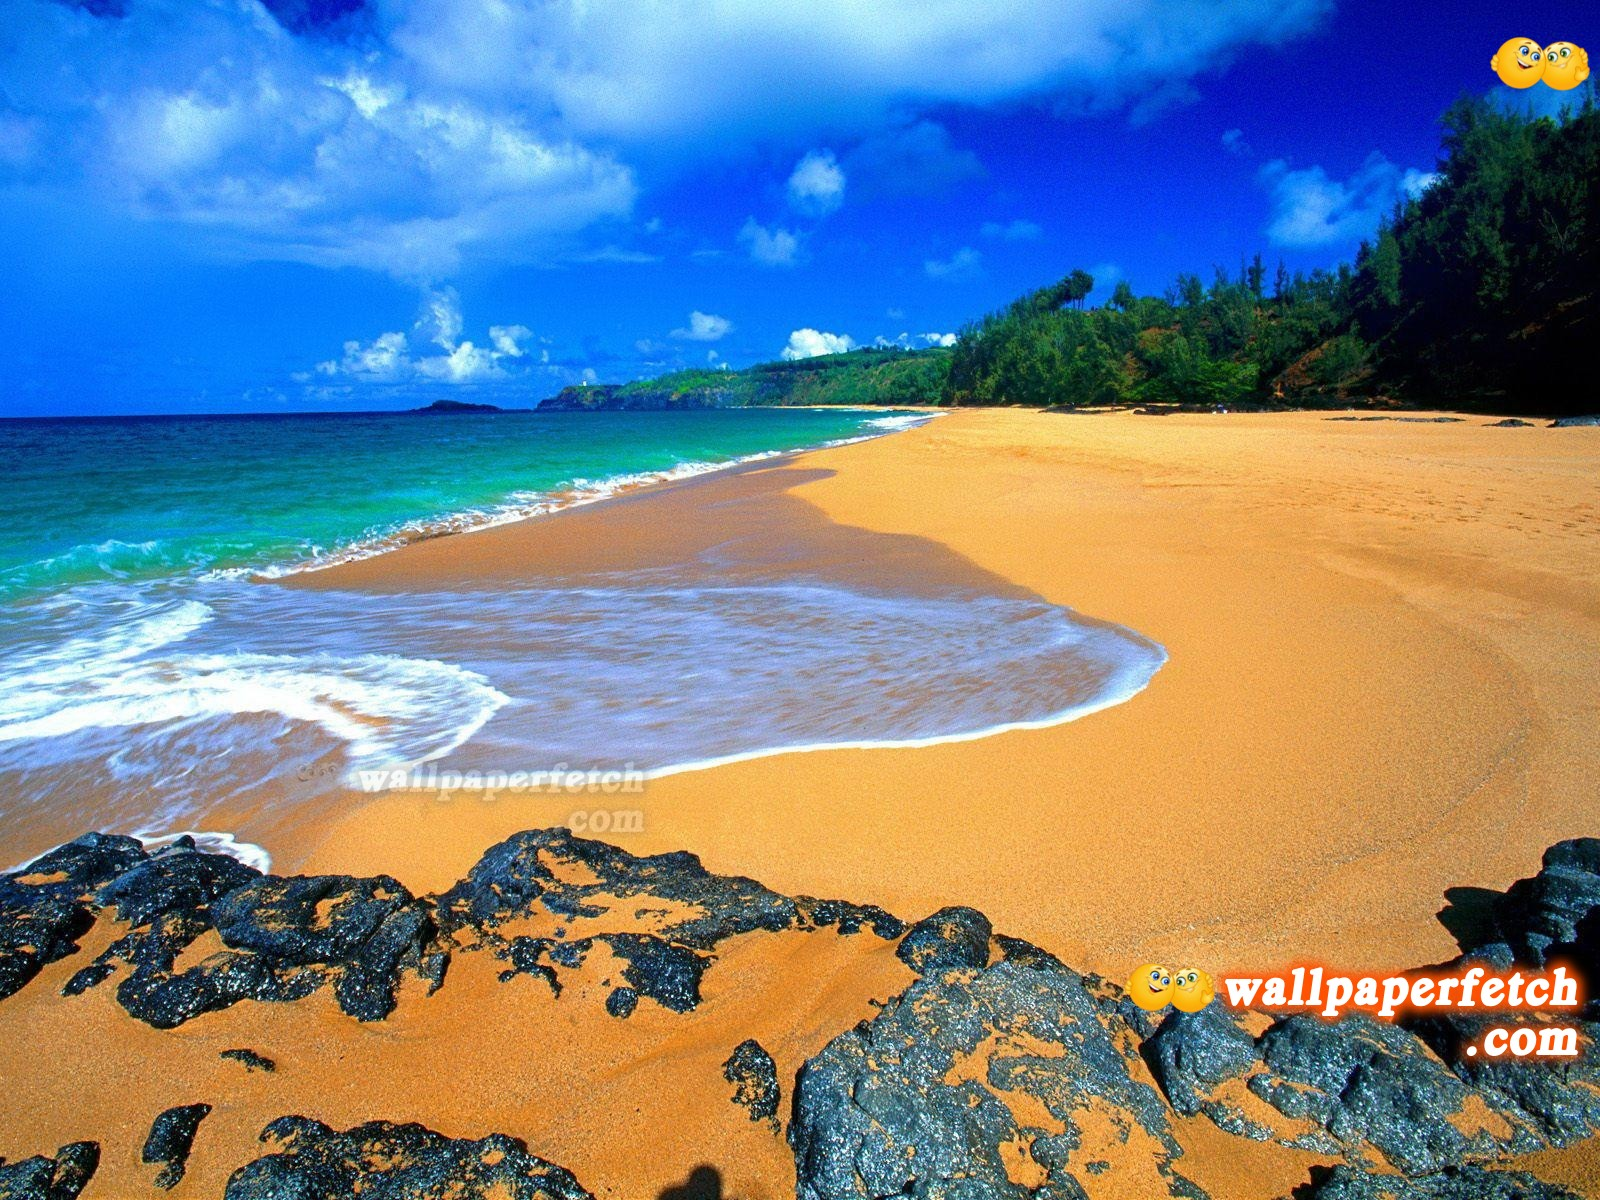 http://1.bp.blogspot.com/-JLEiuIxtdEo/T6QIhz13pVI/AAAAAAAALHM/wnpPLupQJfw/s1600/Beautiful_Hawaii_Beach_Wallpaper_1600x1200_wallpaperhere.jpg